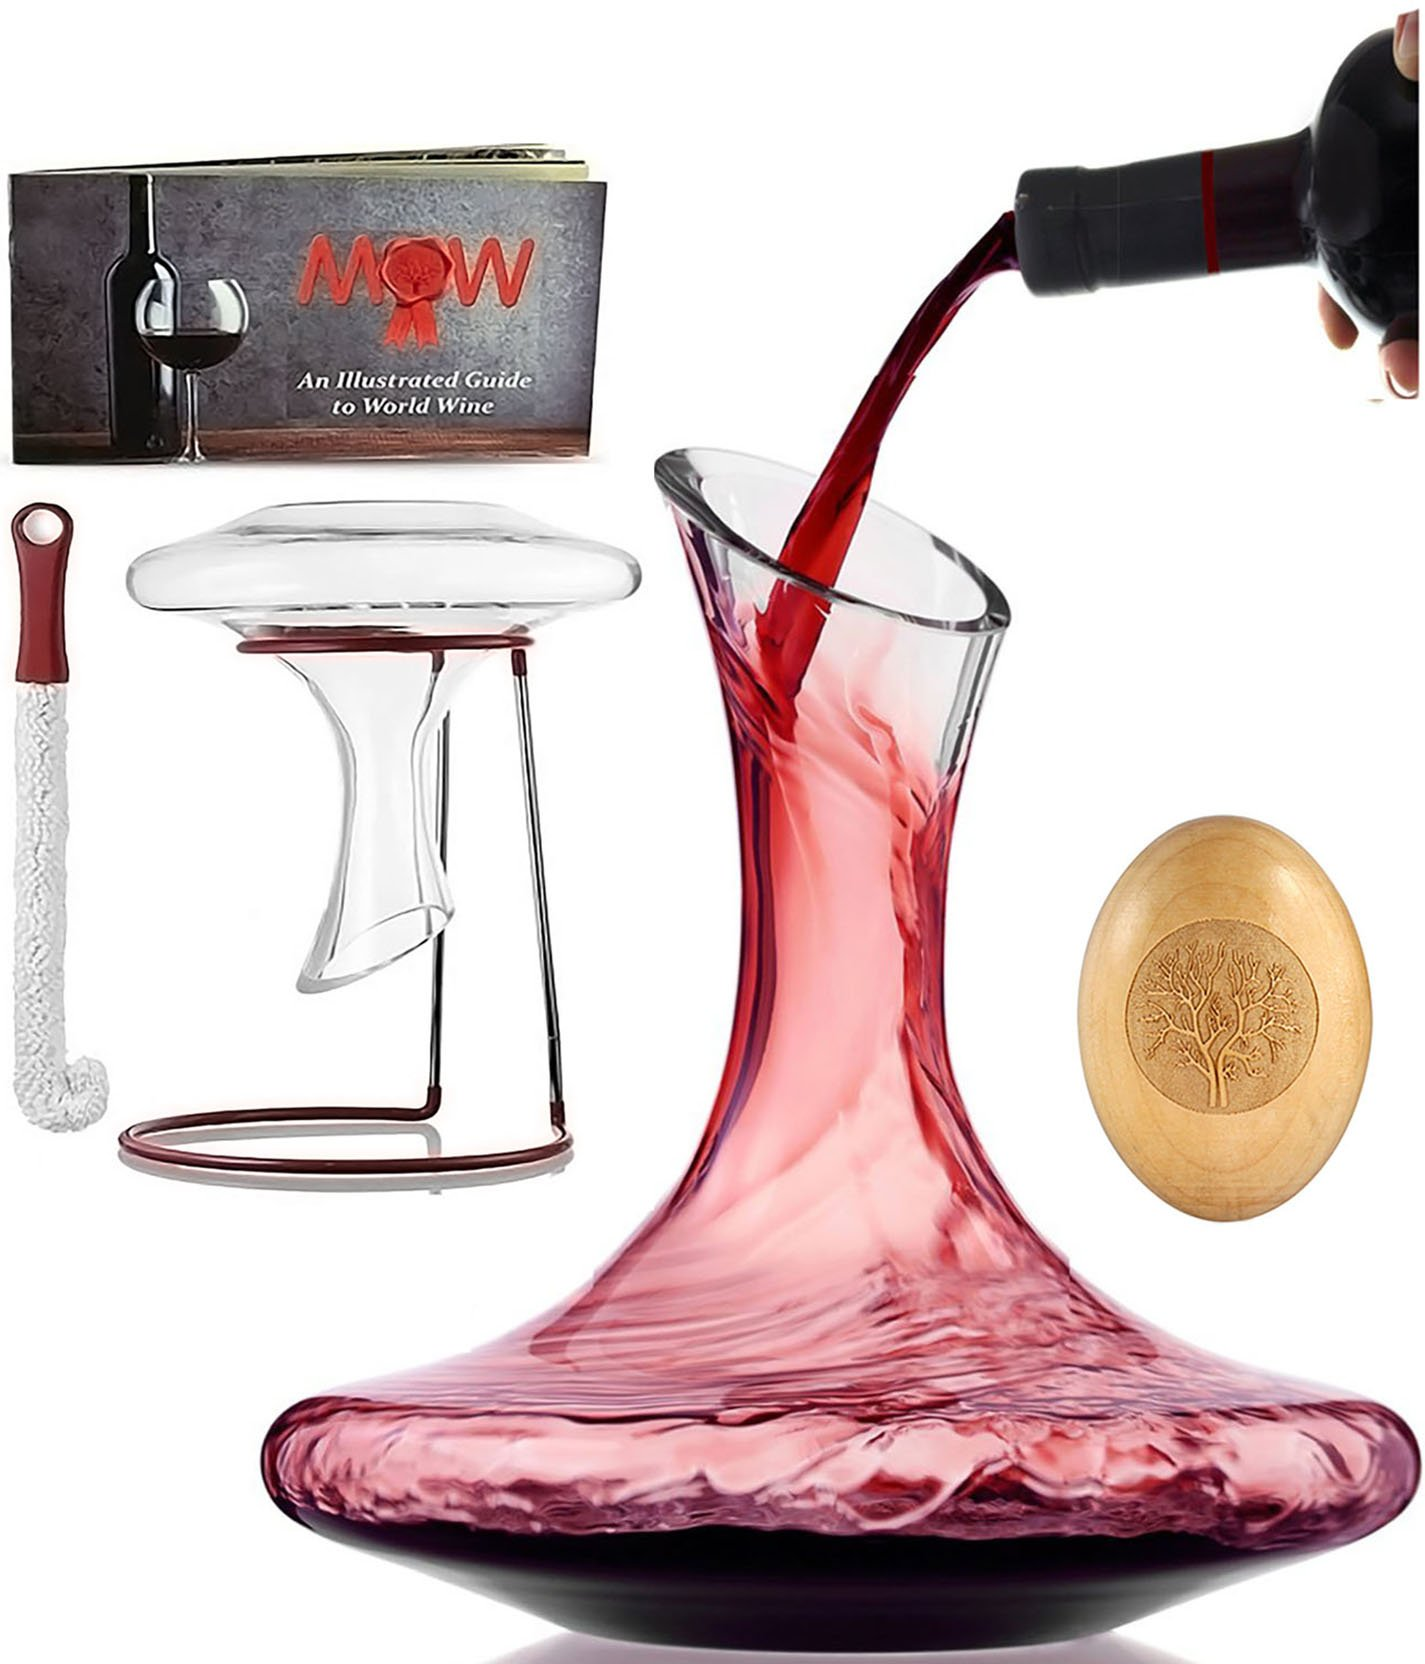 Wine Decanter Aerator Set - with Wood Stopper + Cleaning Brush & Drying Stand | Wine Accessories in Deluxe Box |100% Hand Blown Lead-Free Glass Carafe Kit Perfect for Wine Enthusiast